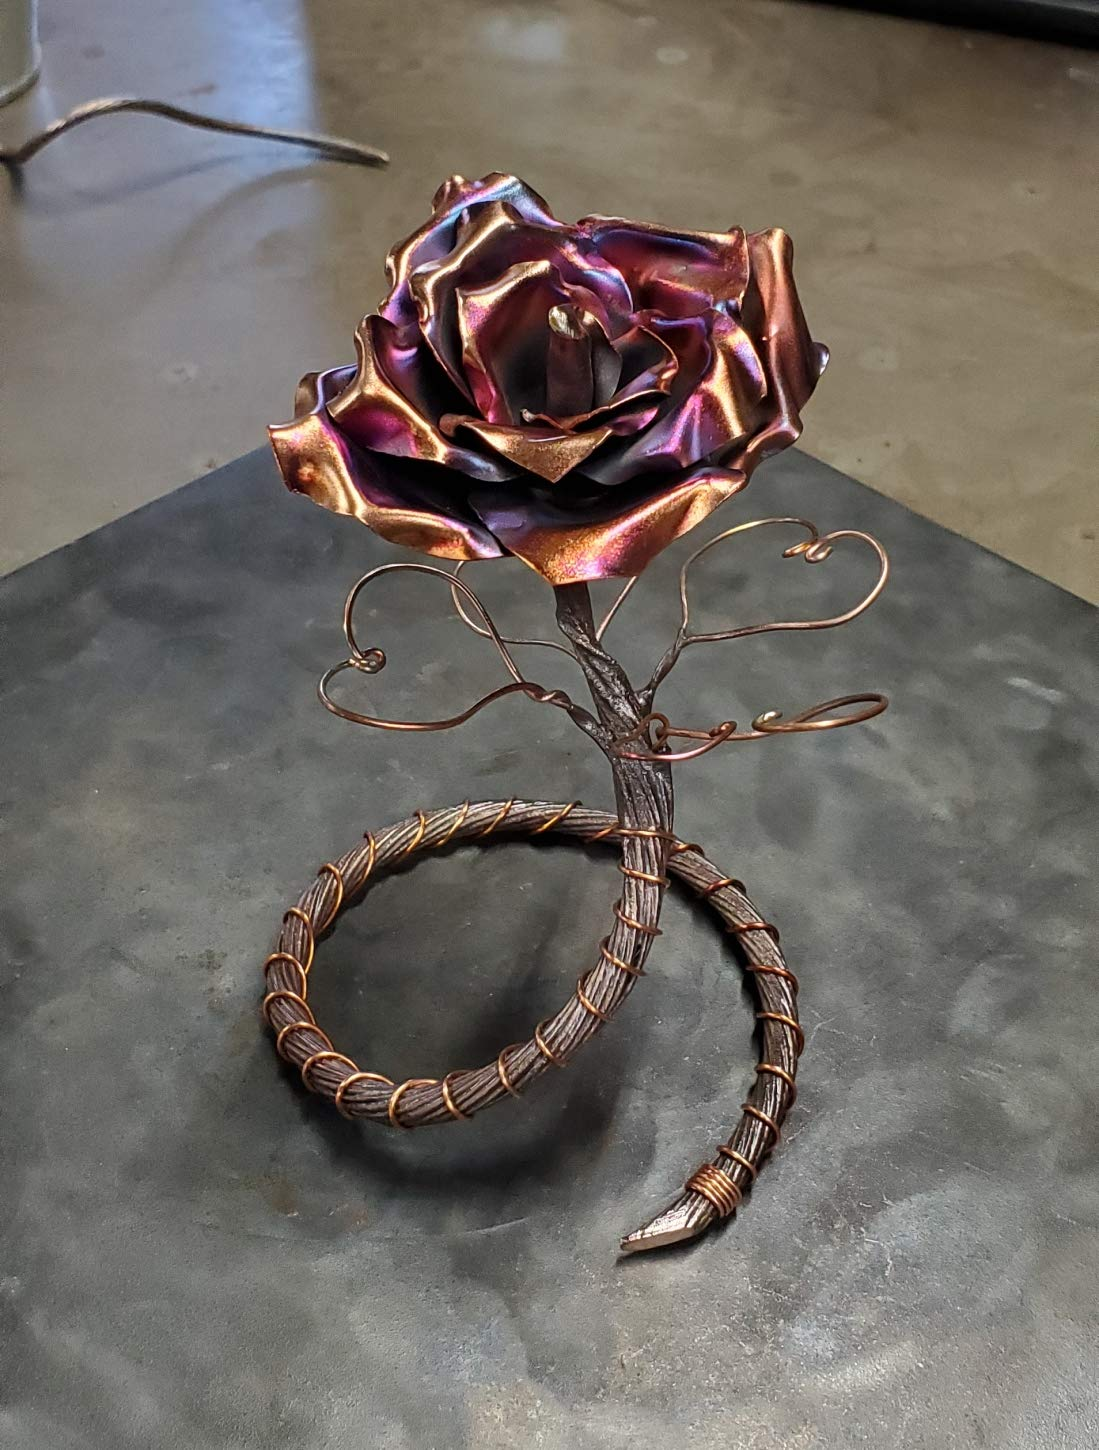 Antique Copper Rose Be Mine 1383e – Steampunk Industrial ready for Your Anniversary Wedding Birthday Valentine s Mother s Day Christmas Gift